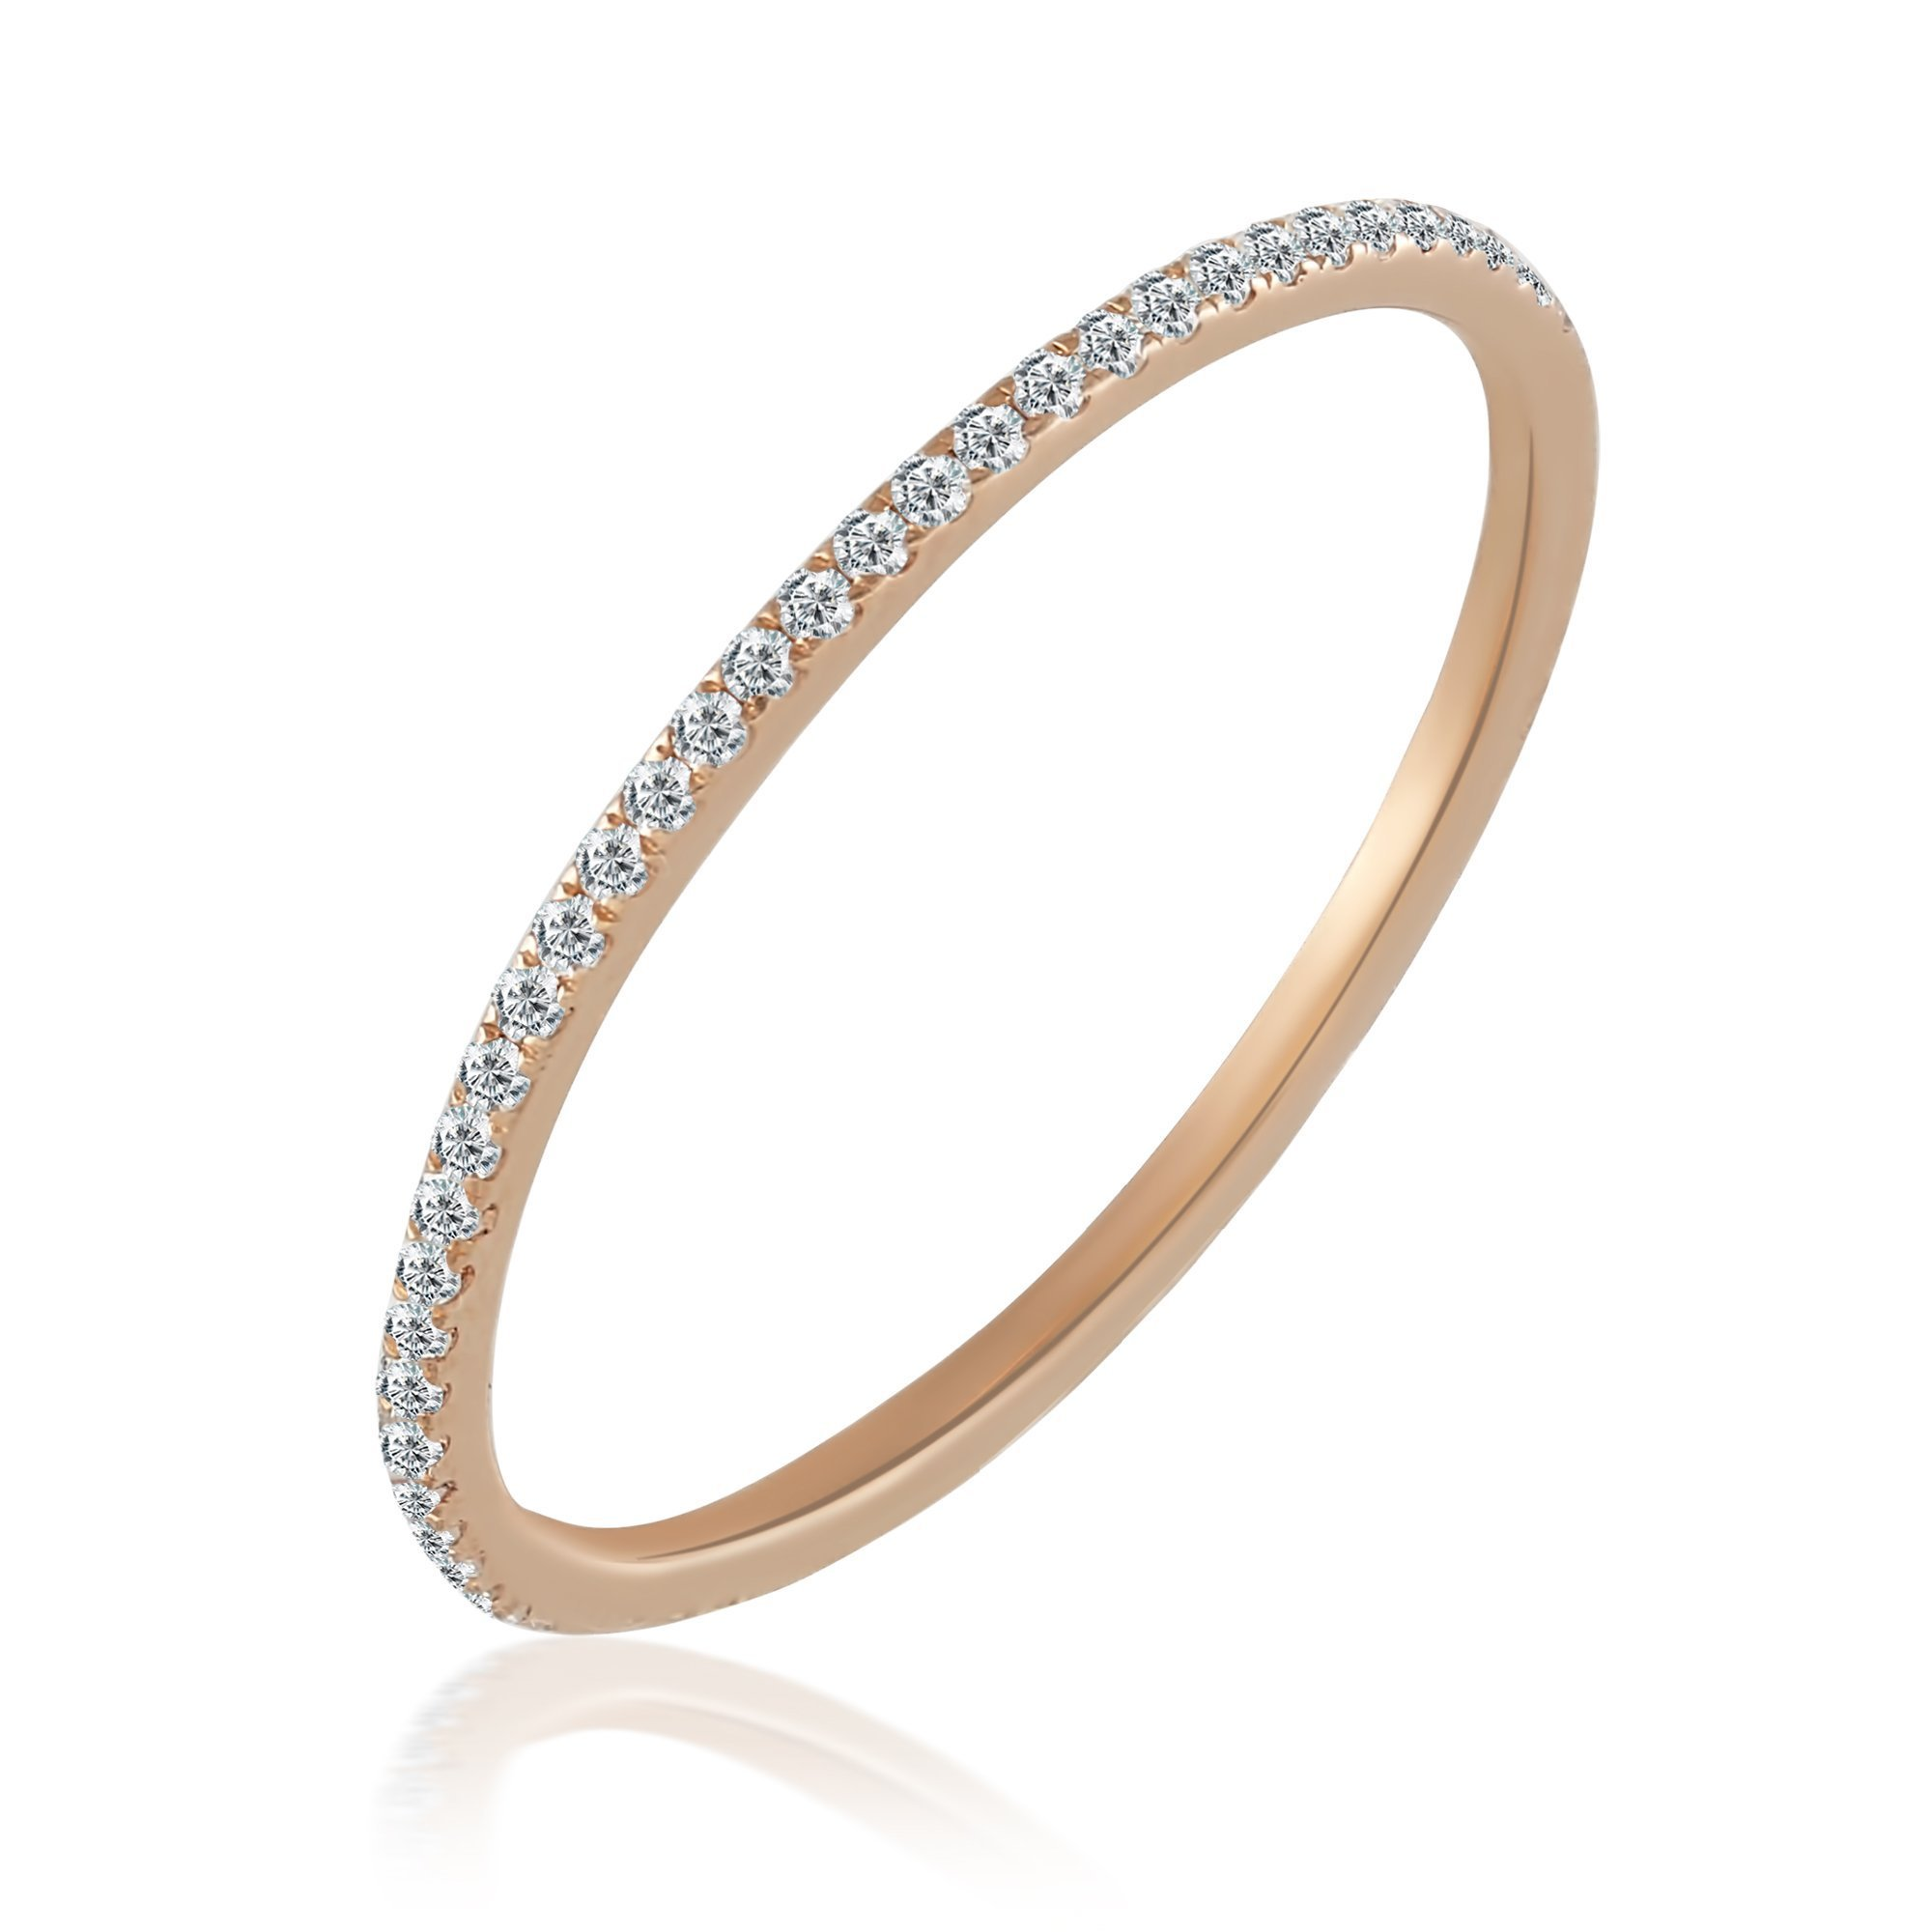 Balluccitoosi Eternity Ring -14K Rose Gold Diamond Band Stackable Matching Band - stacking ring stackable diamond engagement rings-0.20 tcw Diamond Ladies Dainty Anniversary Wedding Band-Size 6